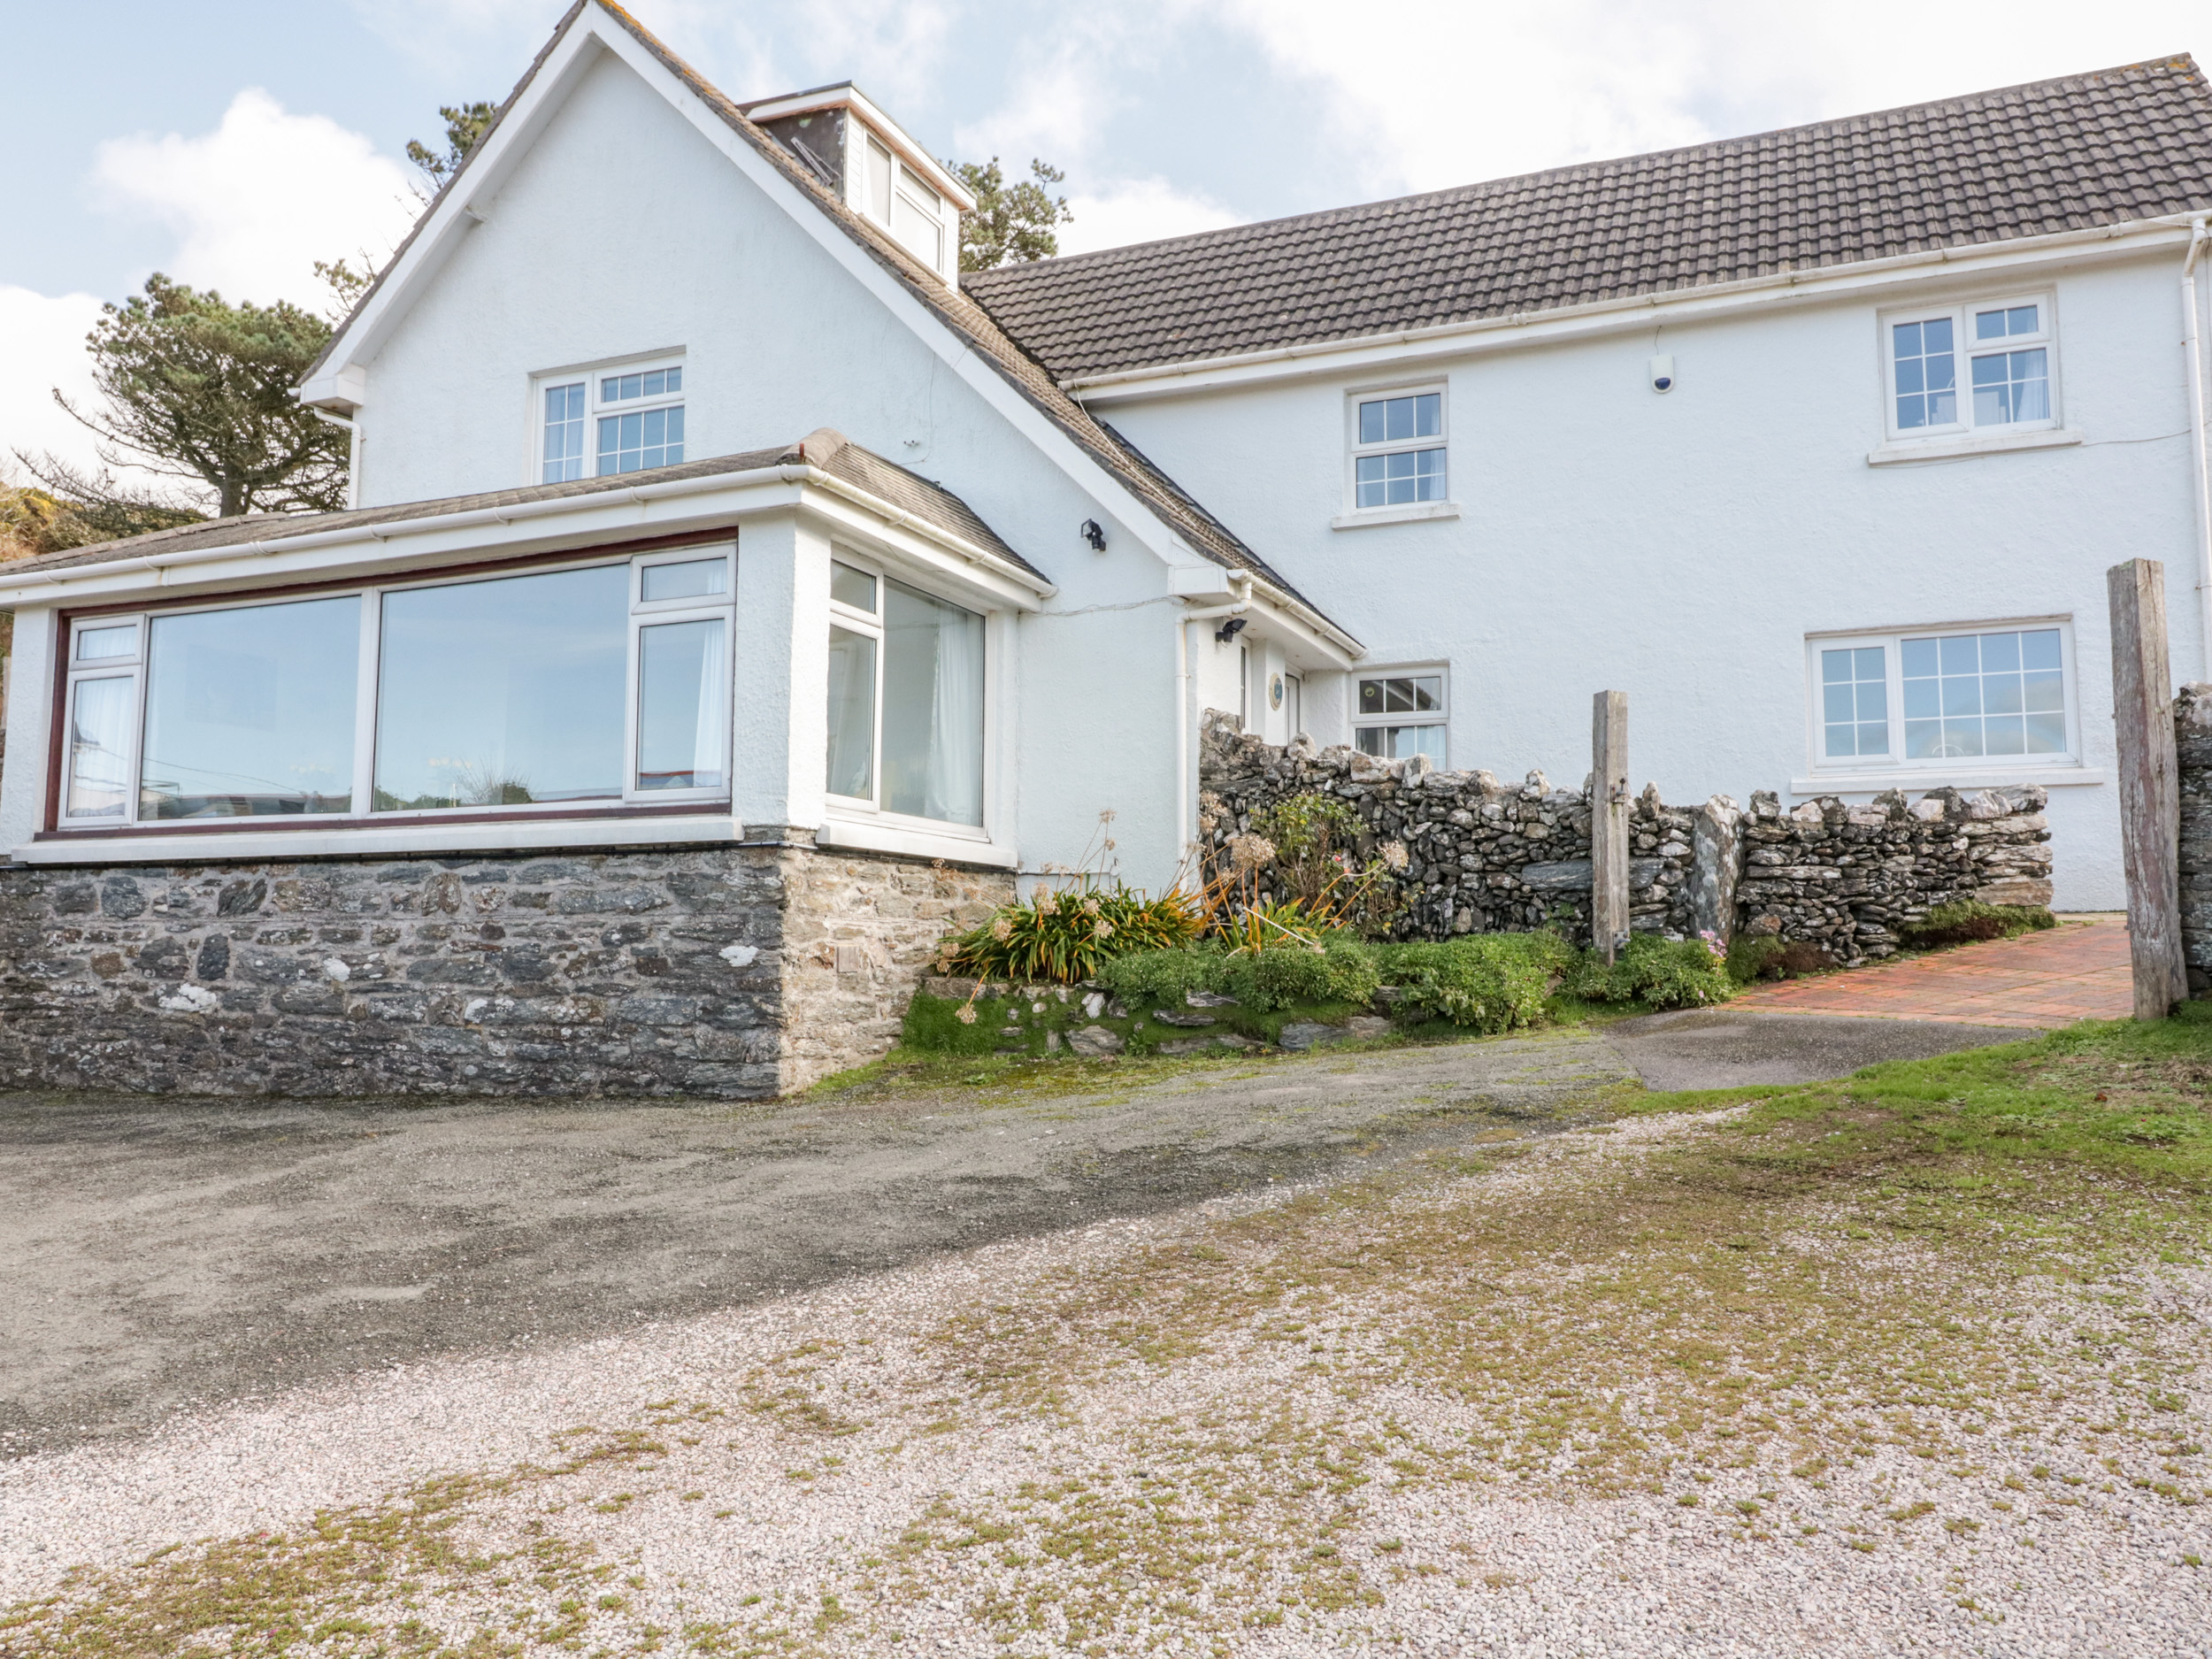 5 bedroom Cottage for rent in Kingsbridge